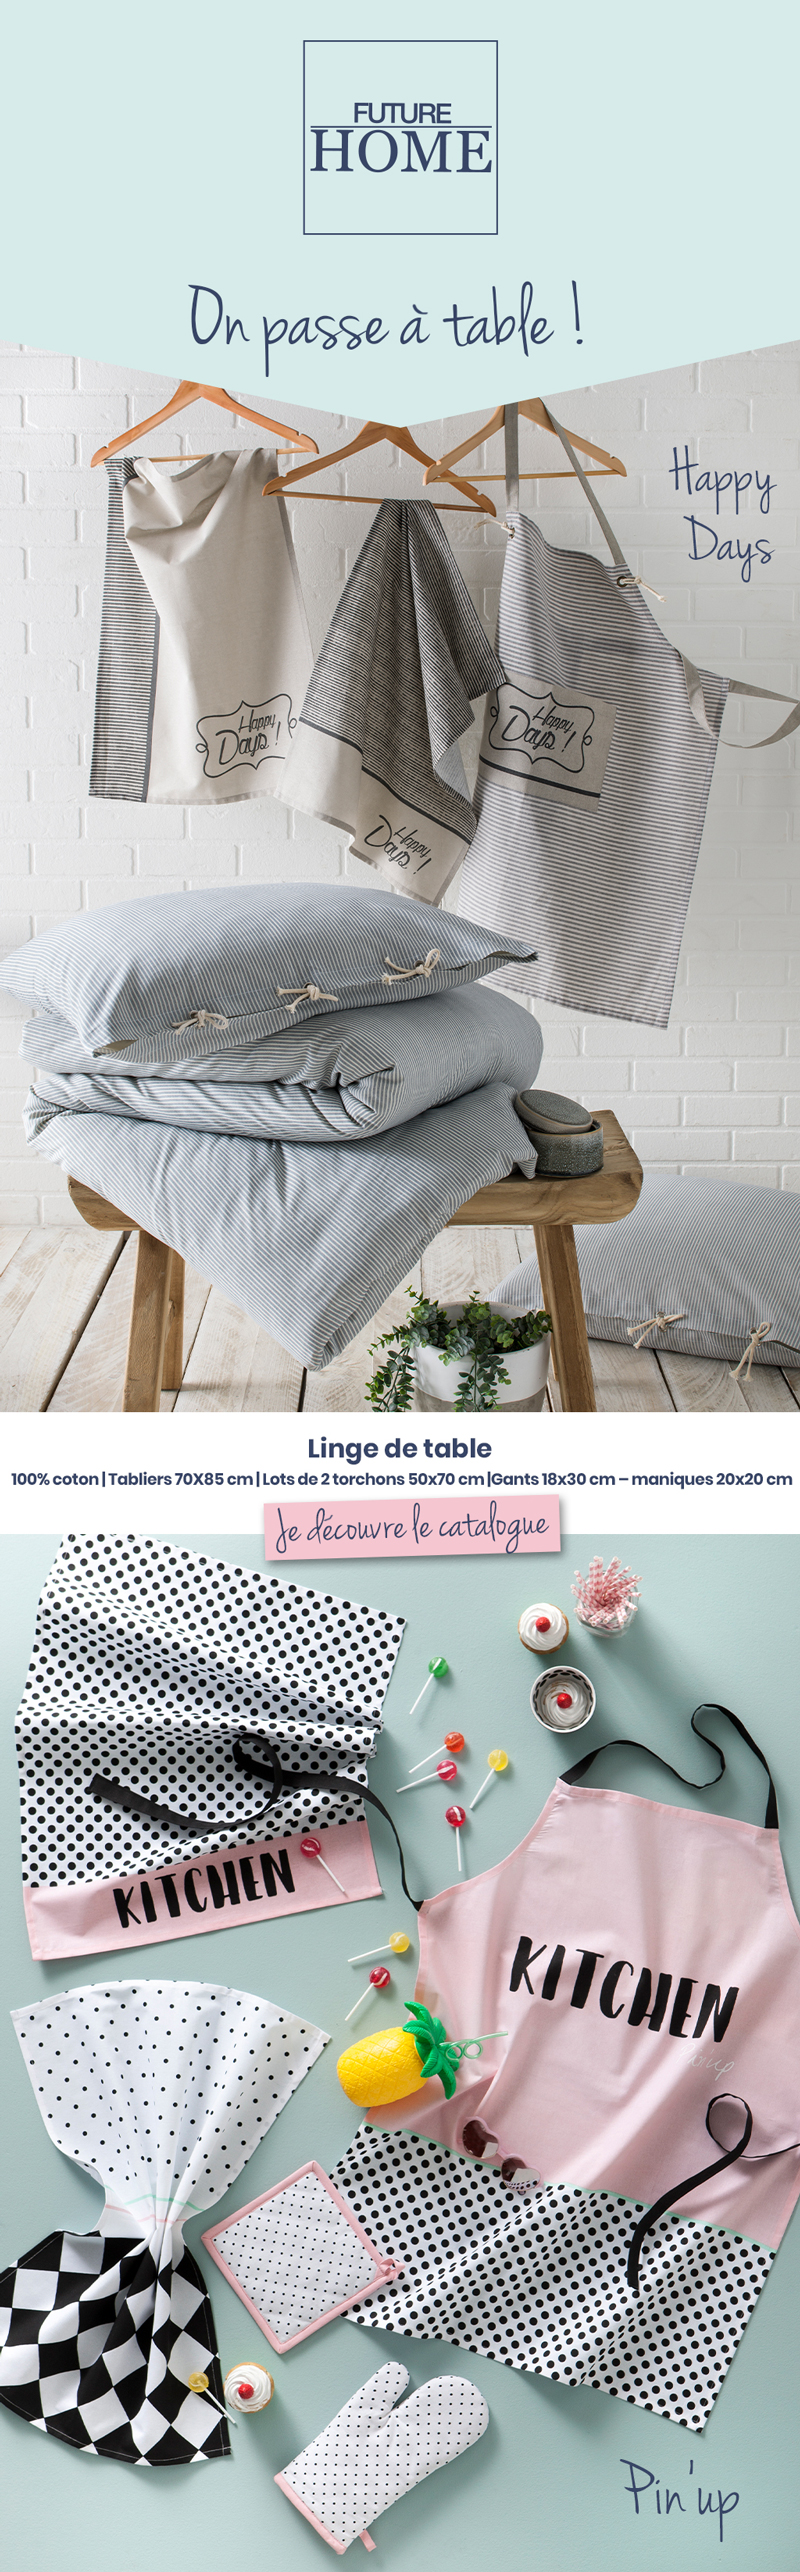 Newsletter Future Home